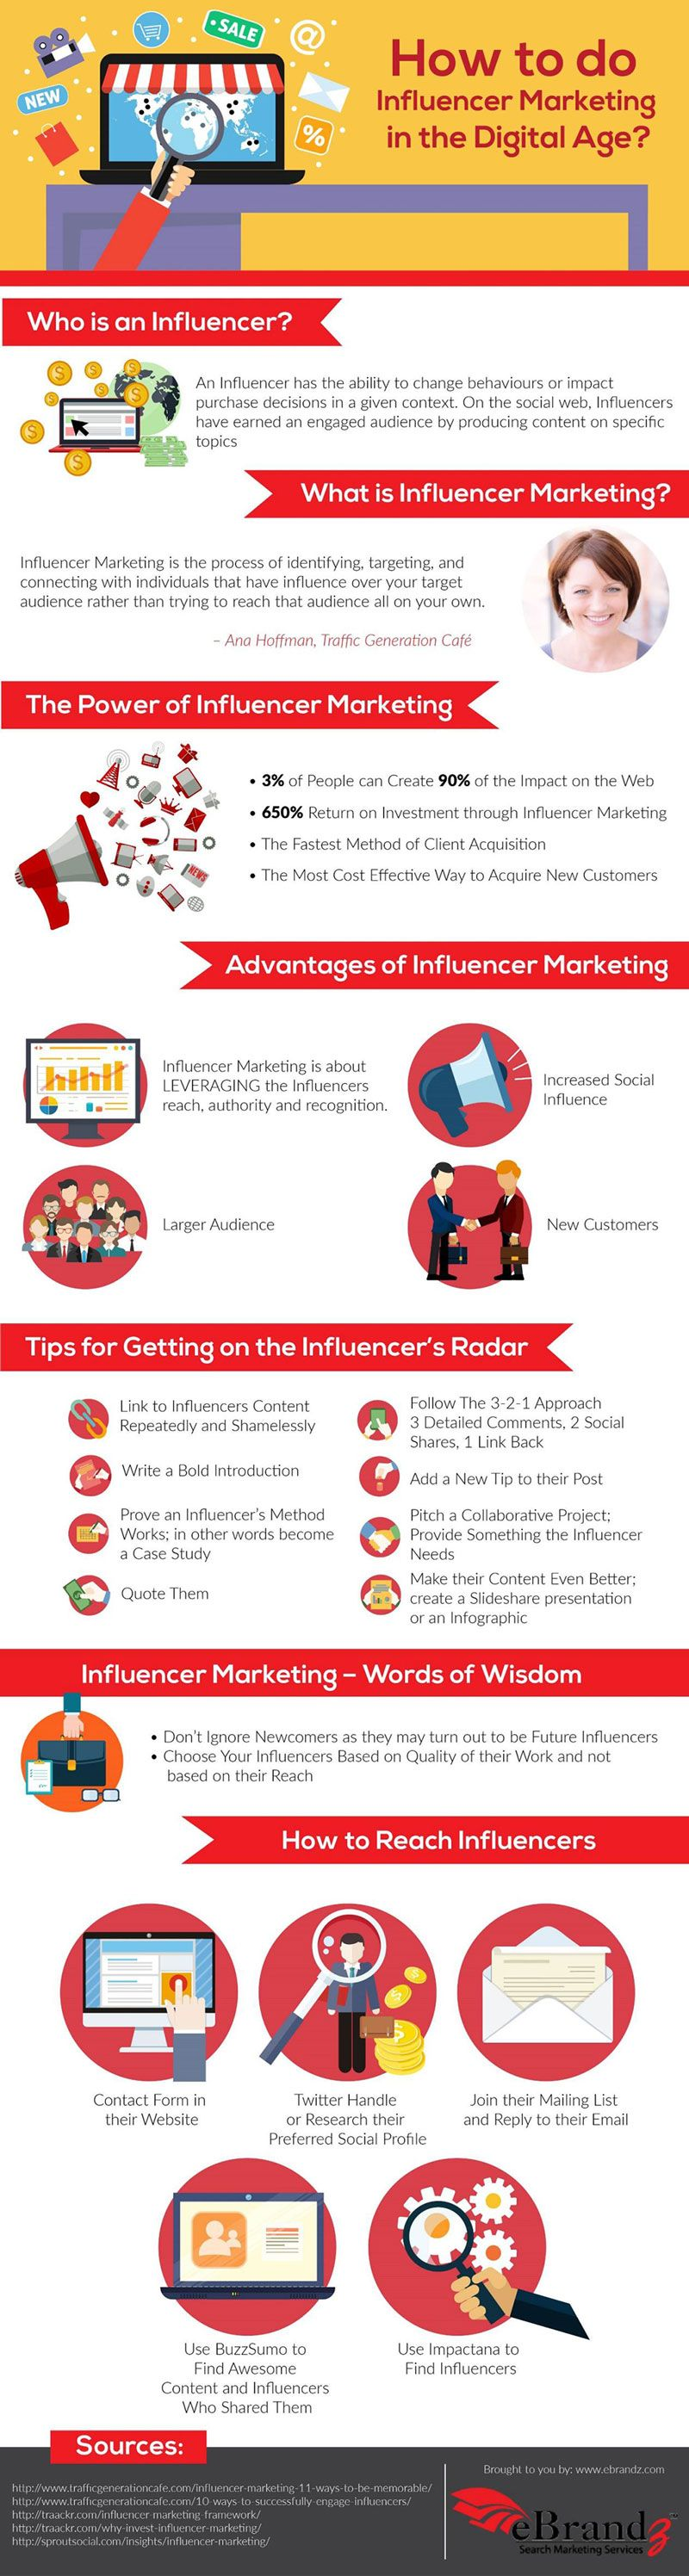 influencer-marketing-infographic-compressor